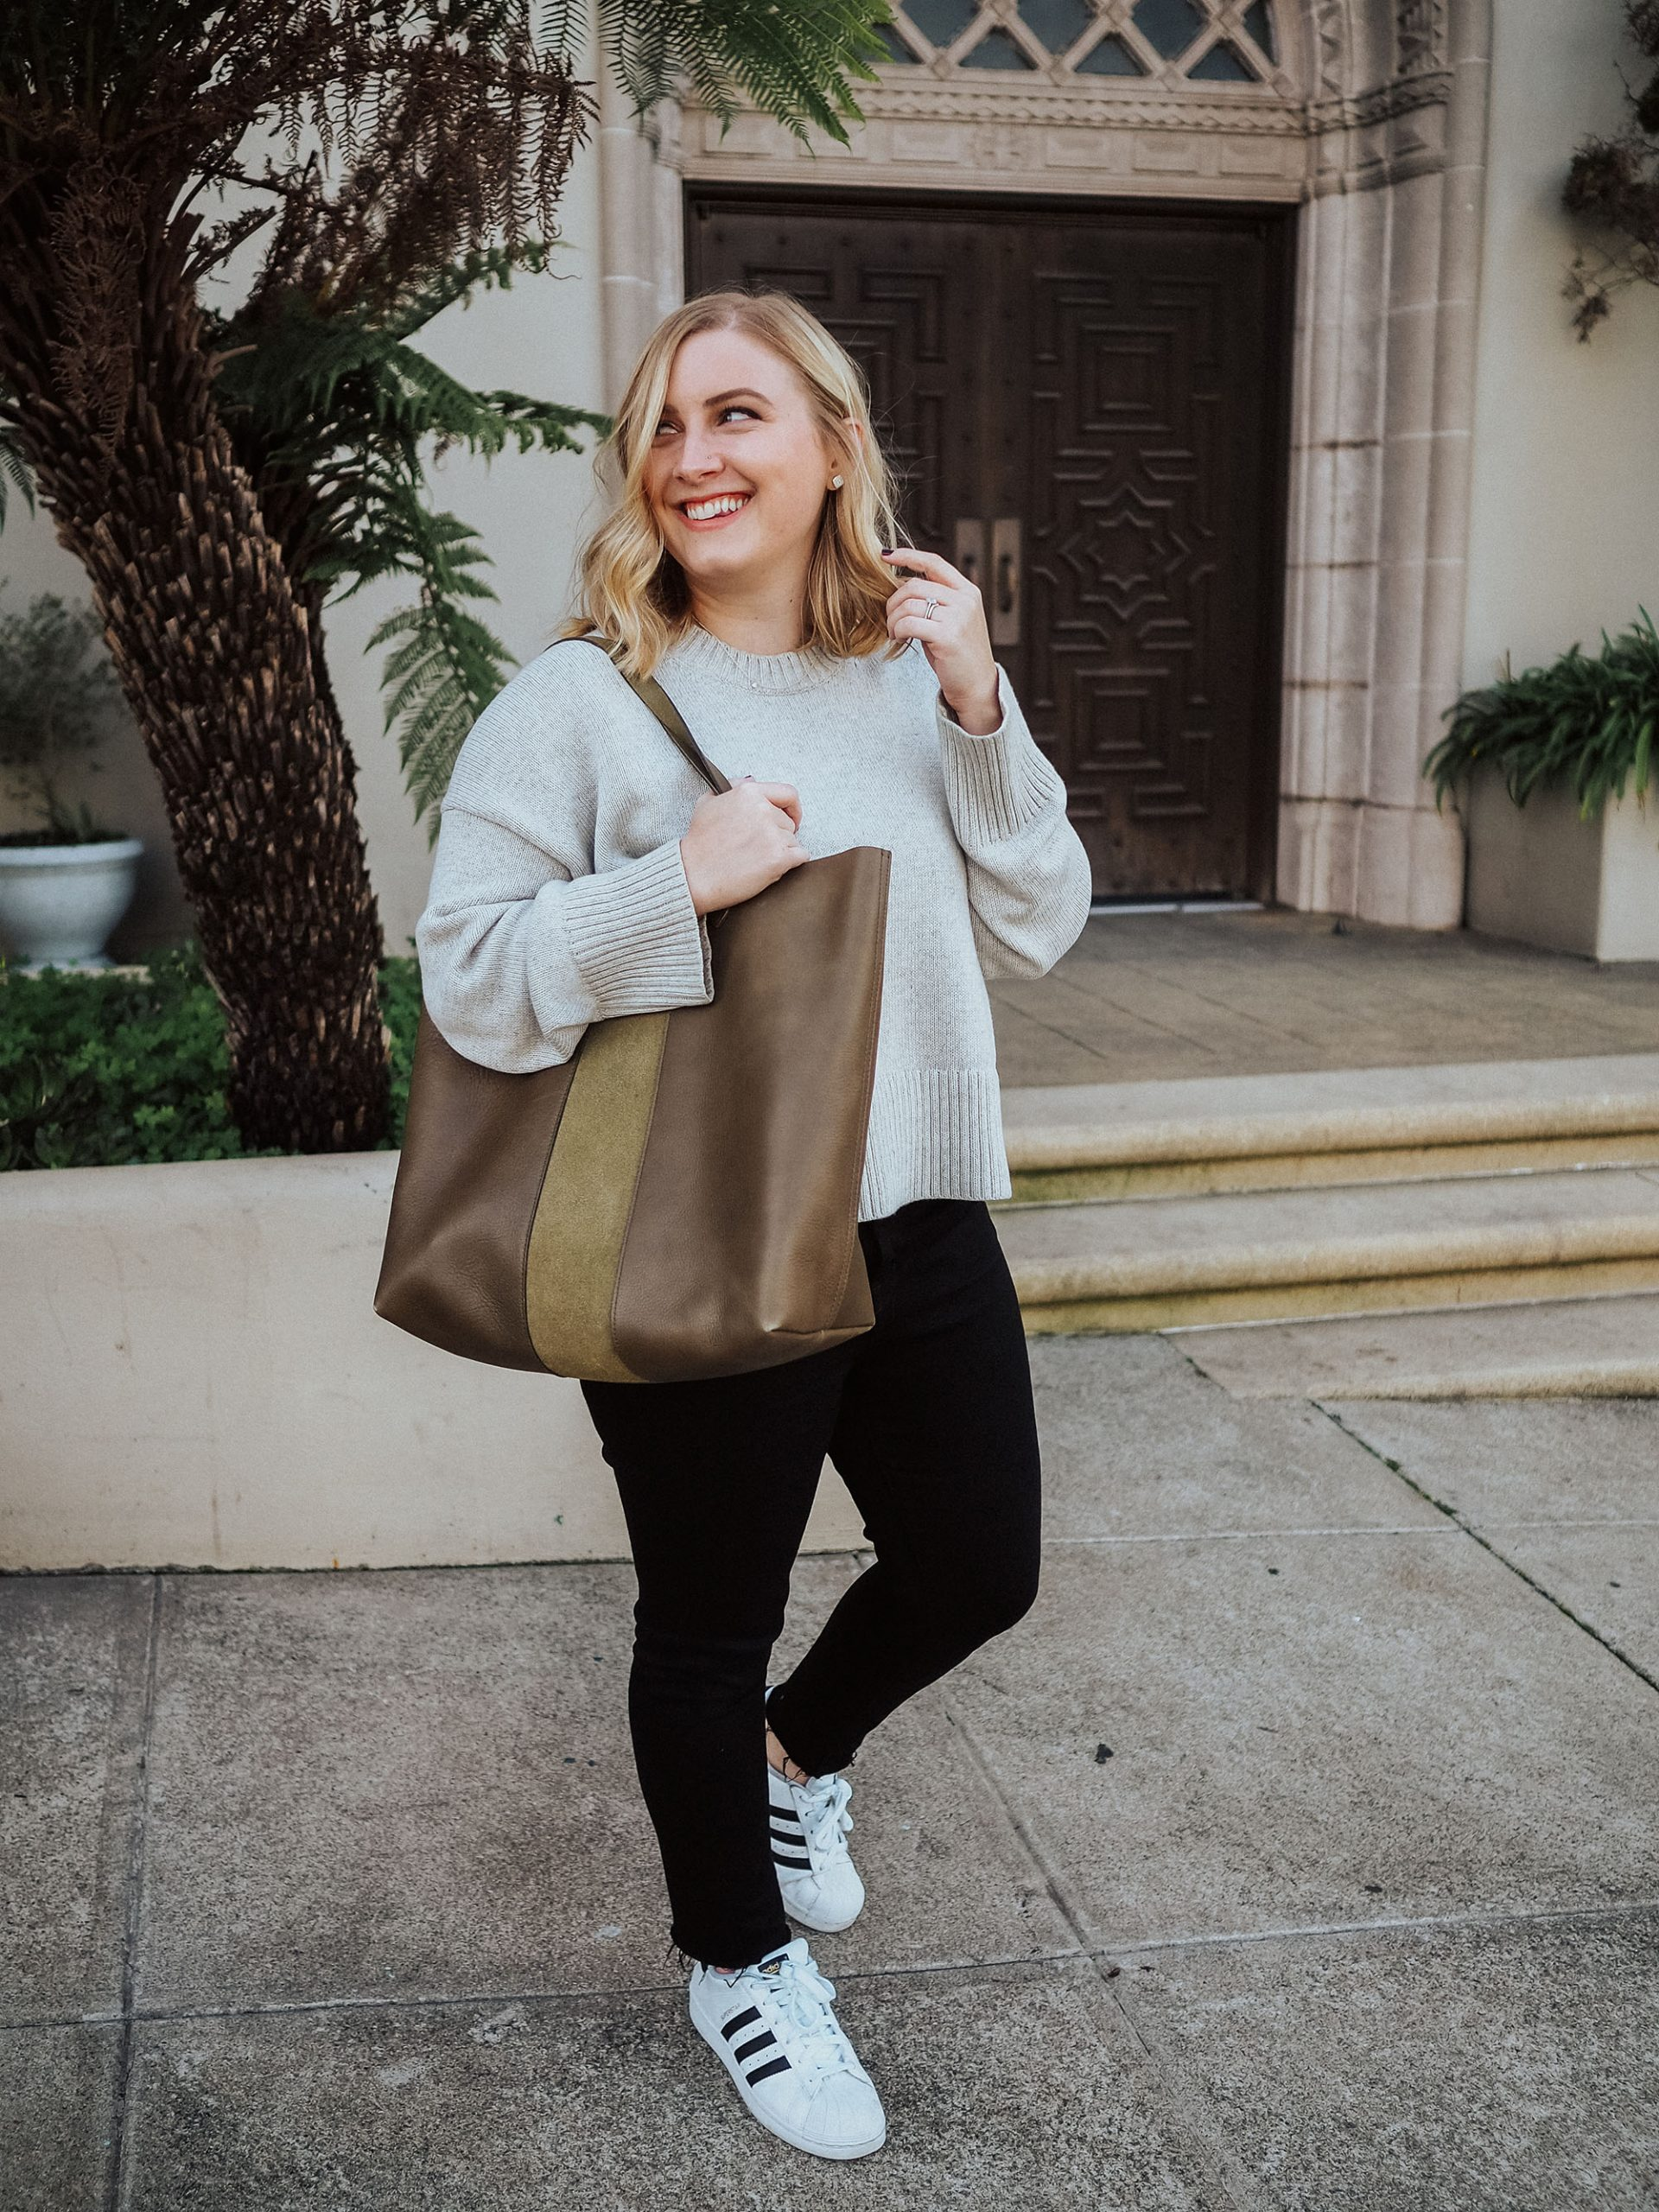 Curious which tote is better, the Cuyana, Everlane, or Madewell totes? This post is for you! Check out this full tote comparison blog post.